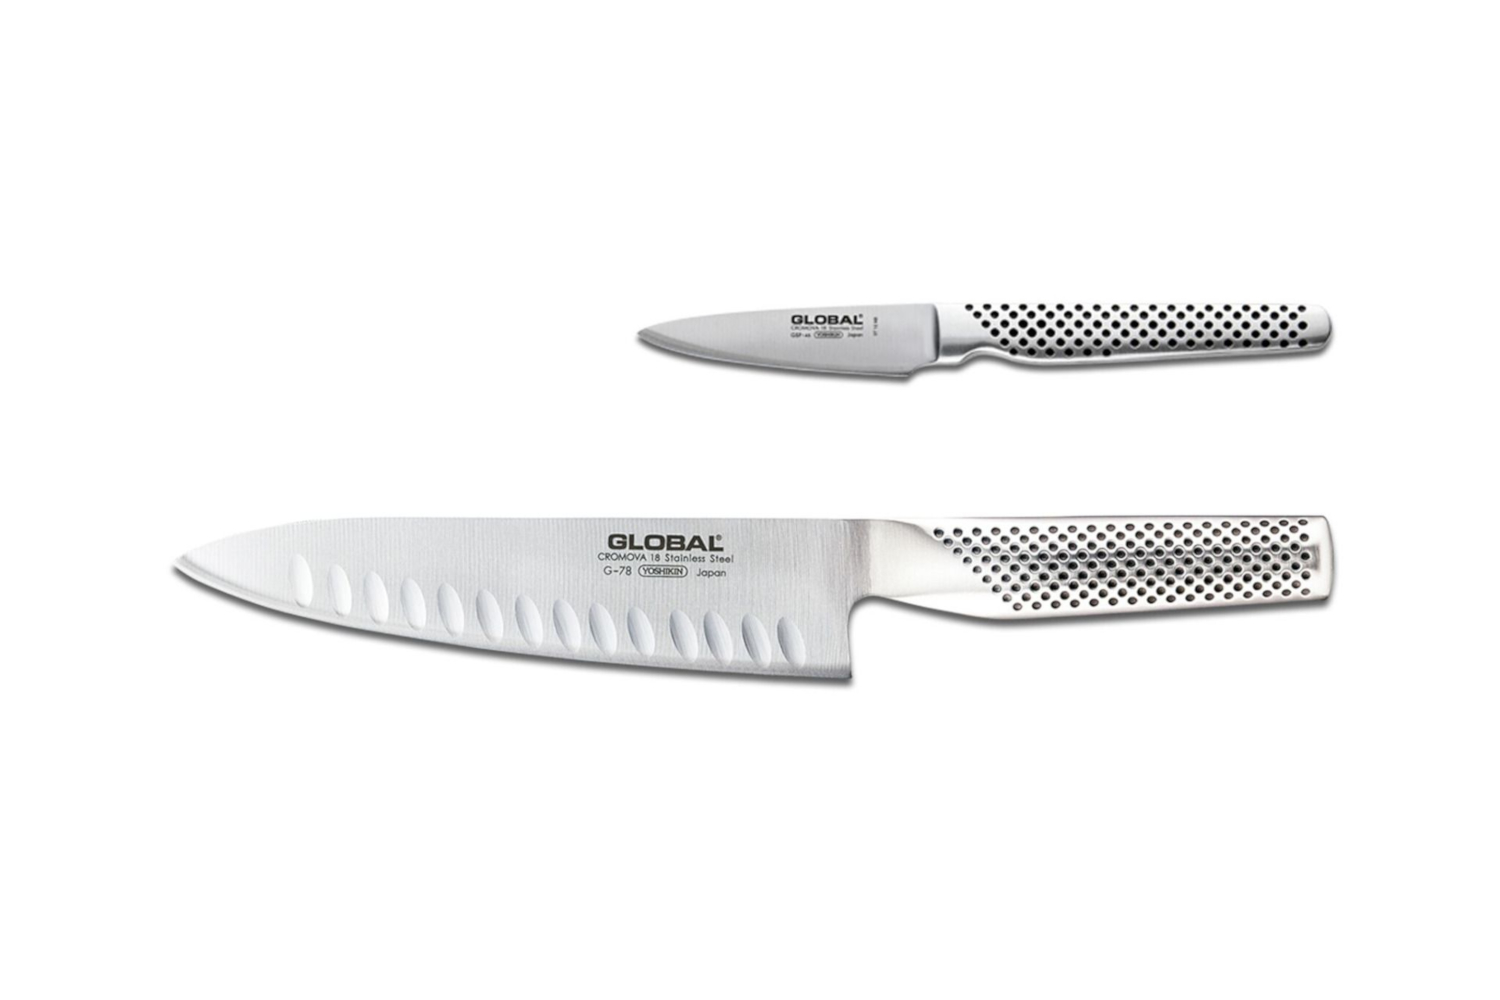 Global 2 Piece Kitchen Knife Set